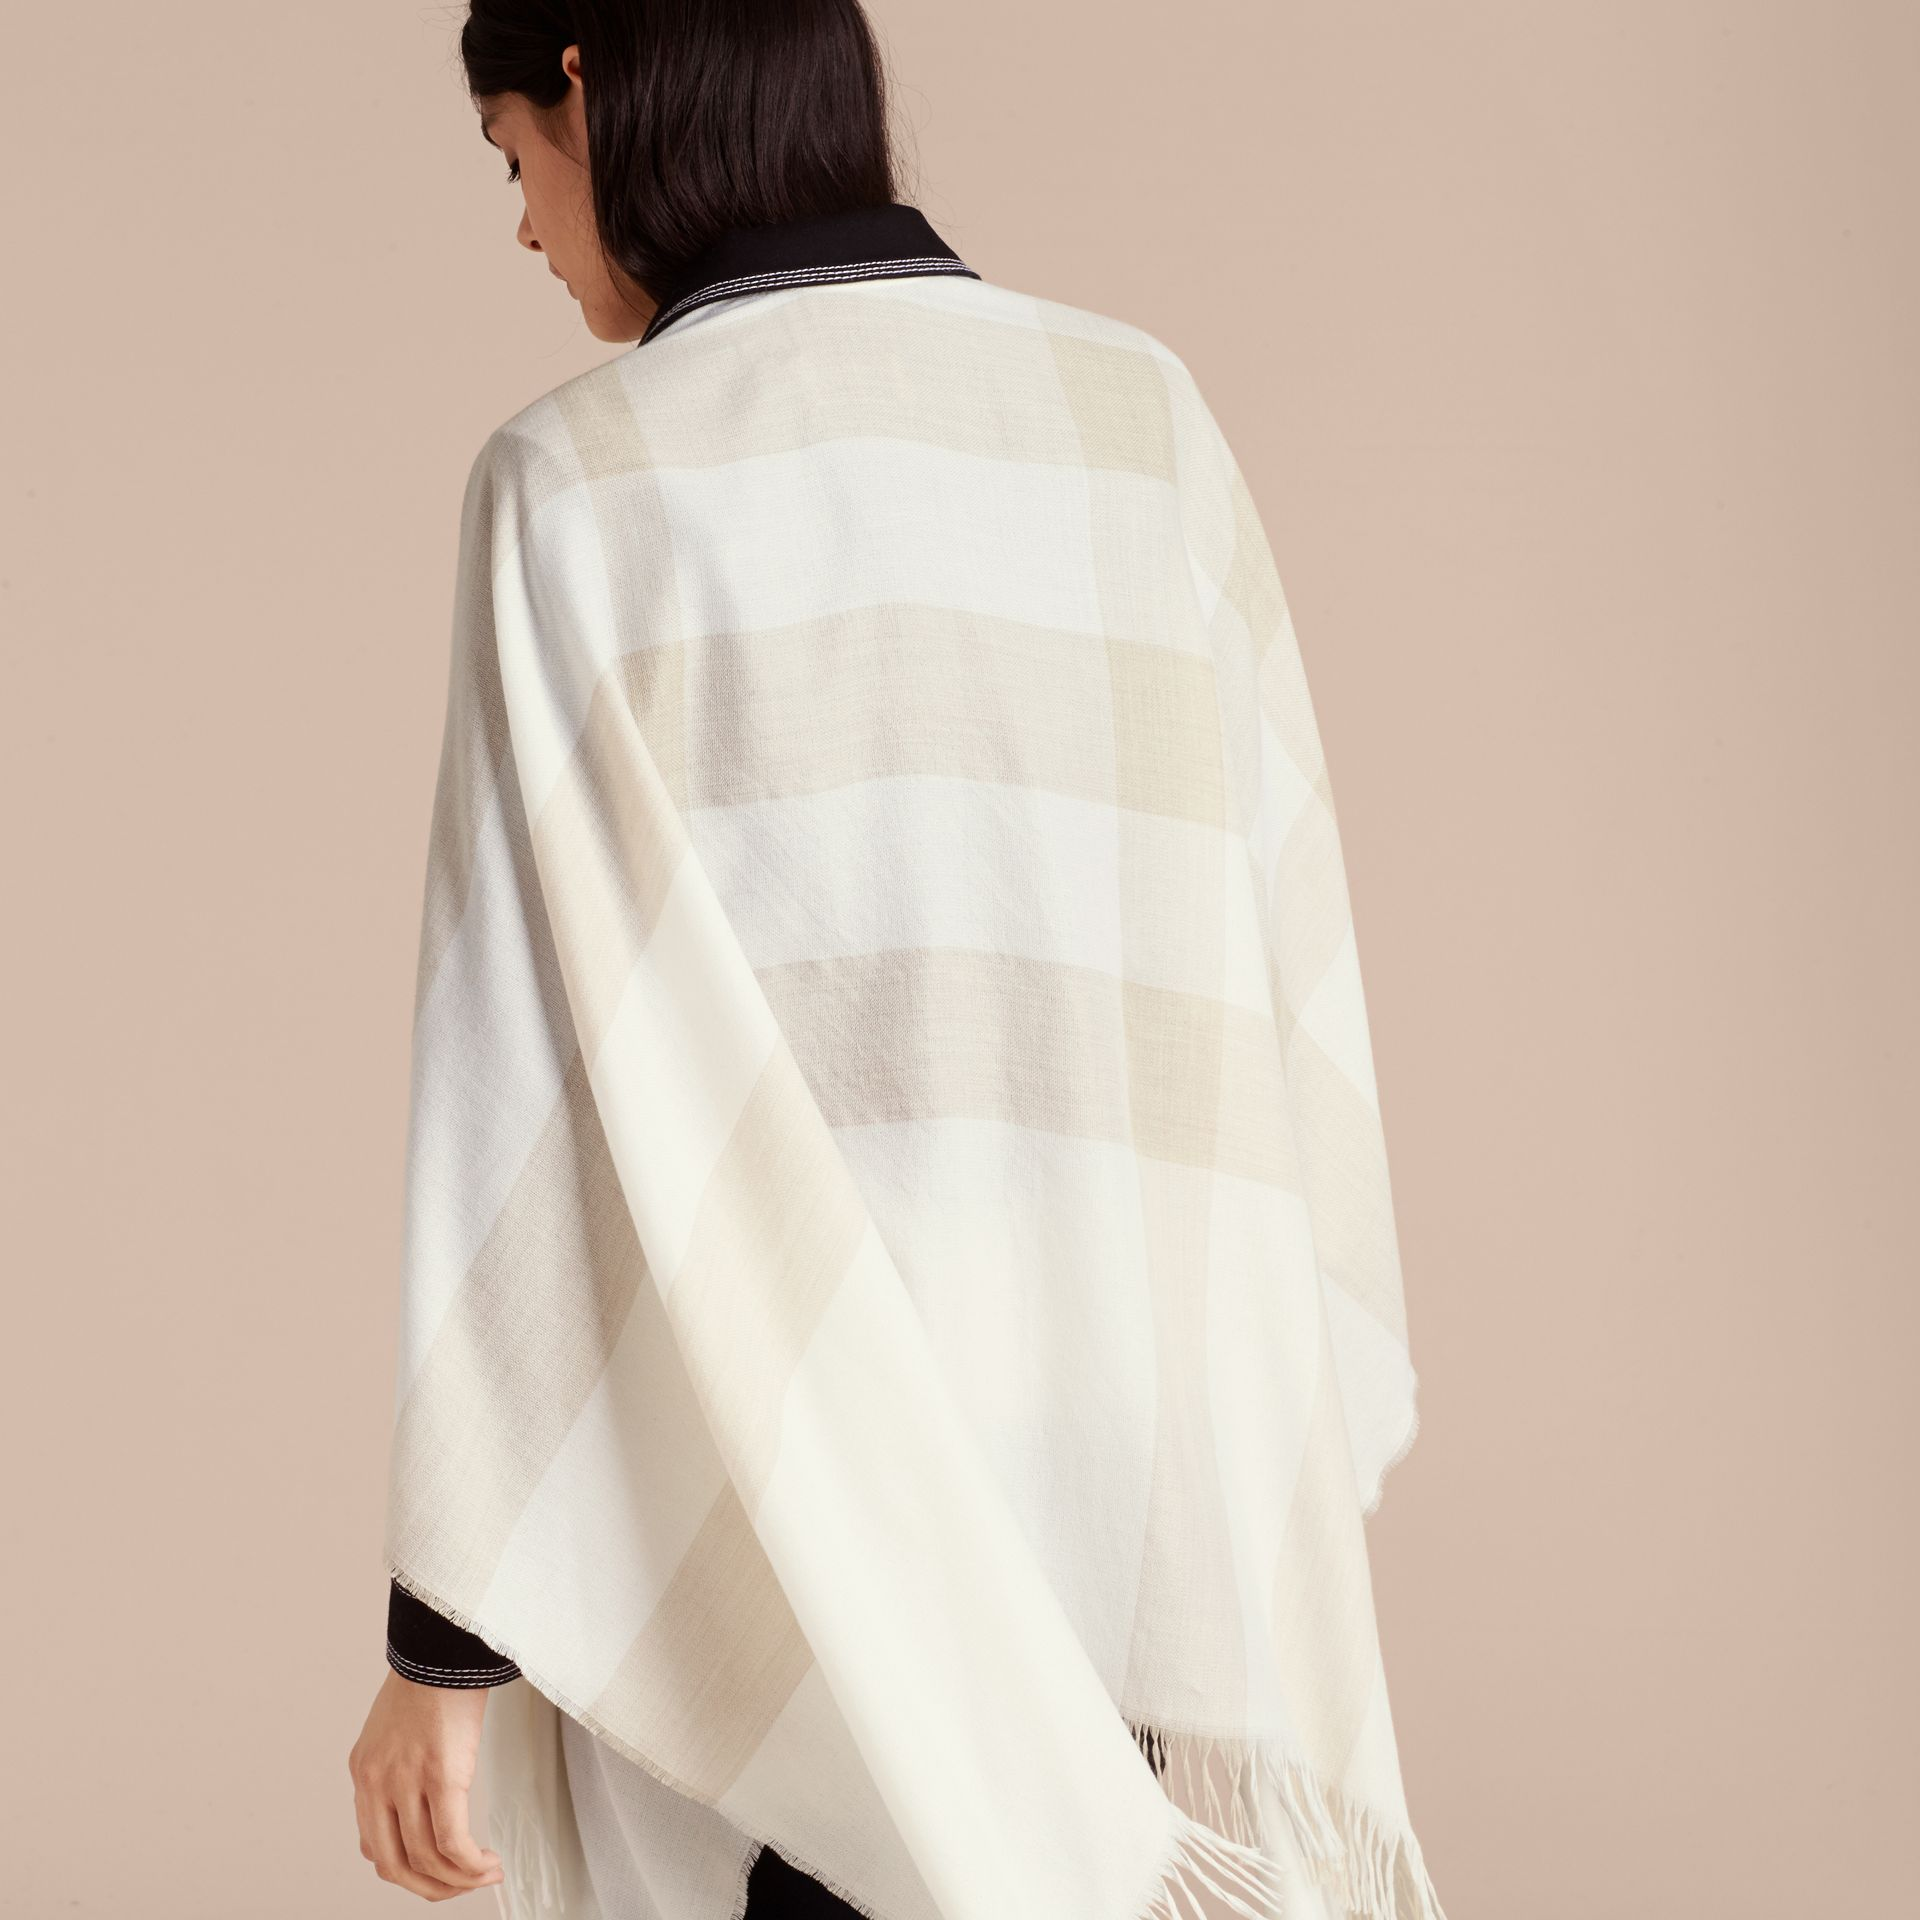 Natural white Lightweight Check Cashmere Poncho Natural White - gallery image 6